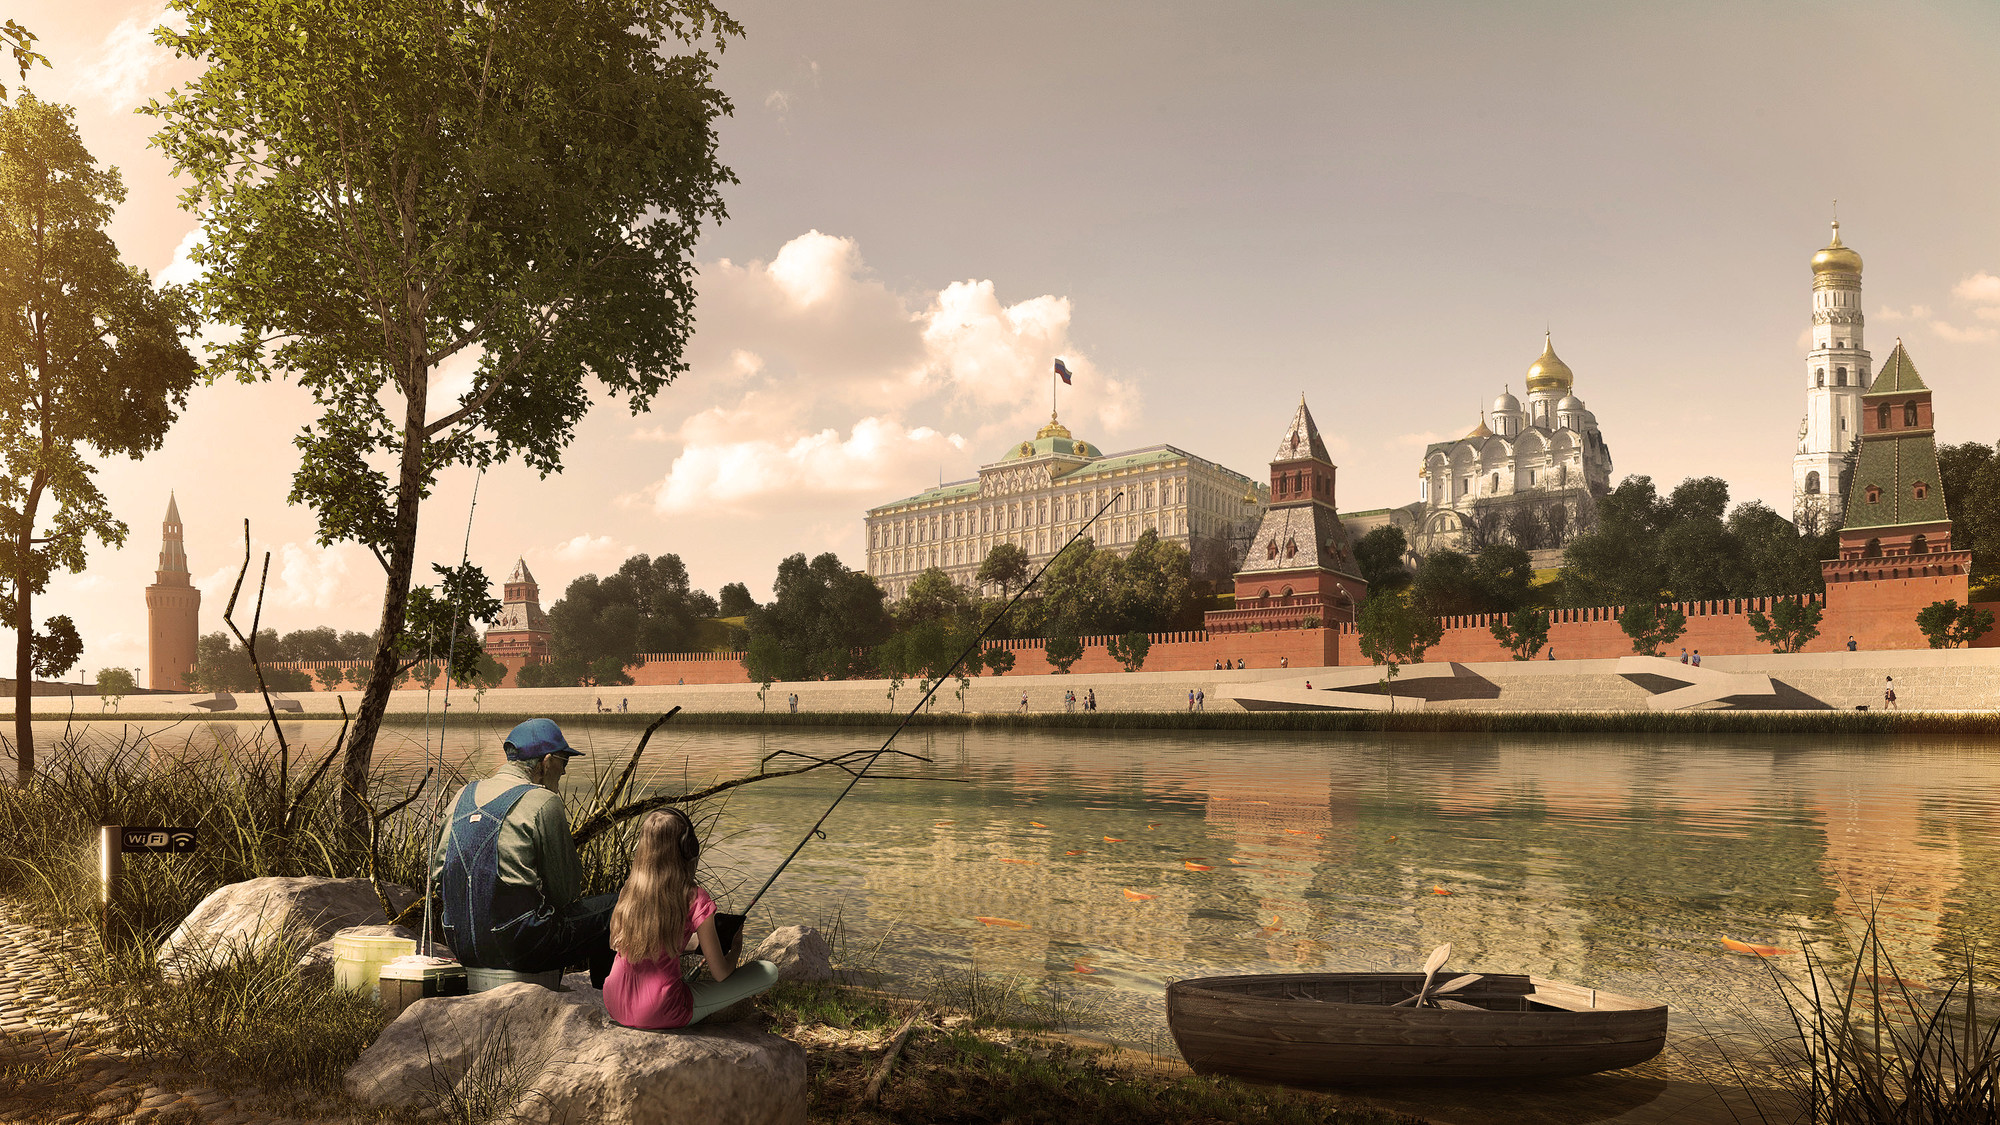 Project Meganom Wins Contest to Transform Moscow Riverfront, Fishing on Kremlin © Courtesy of Project Meganom